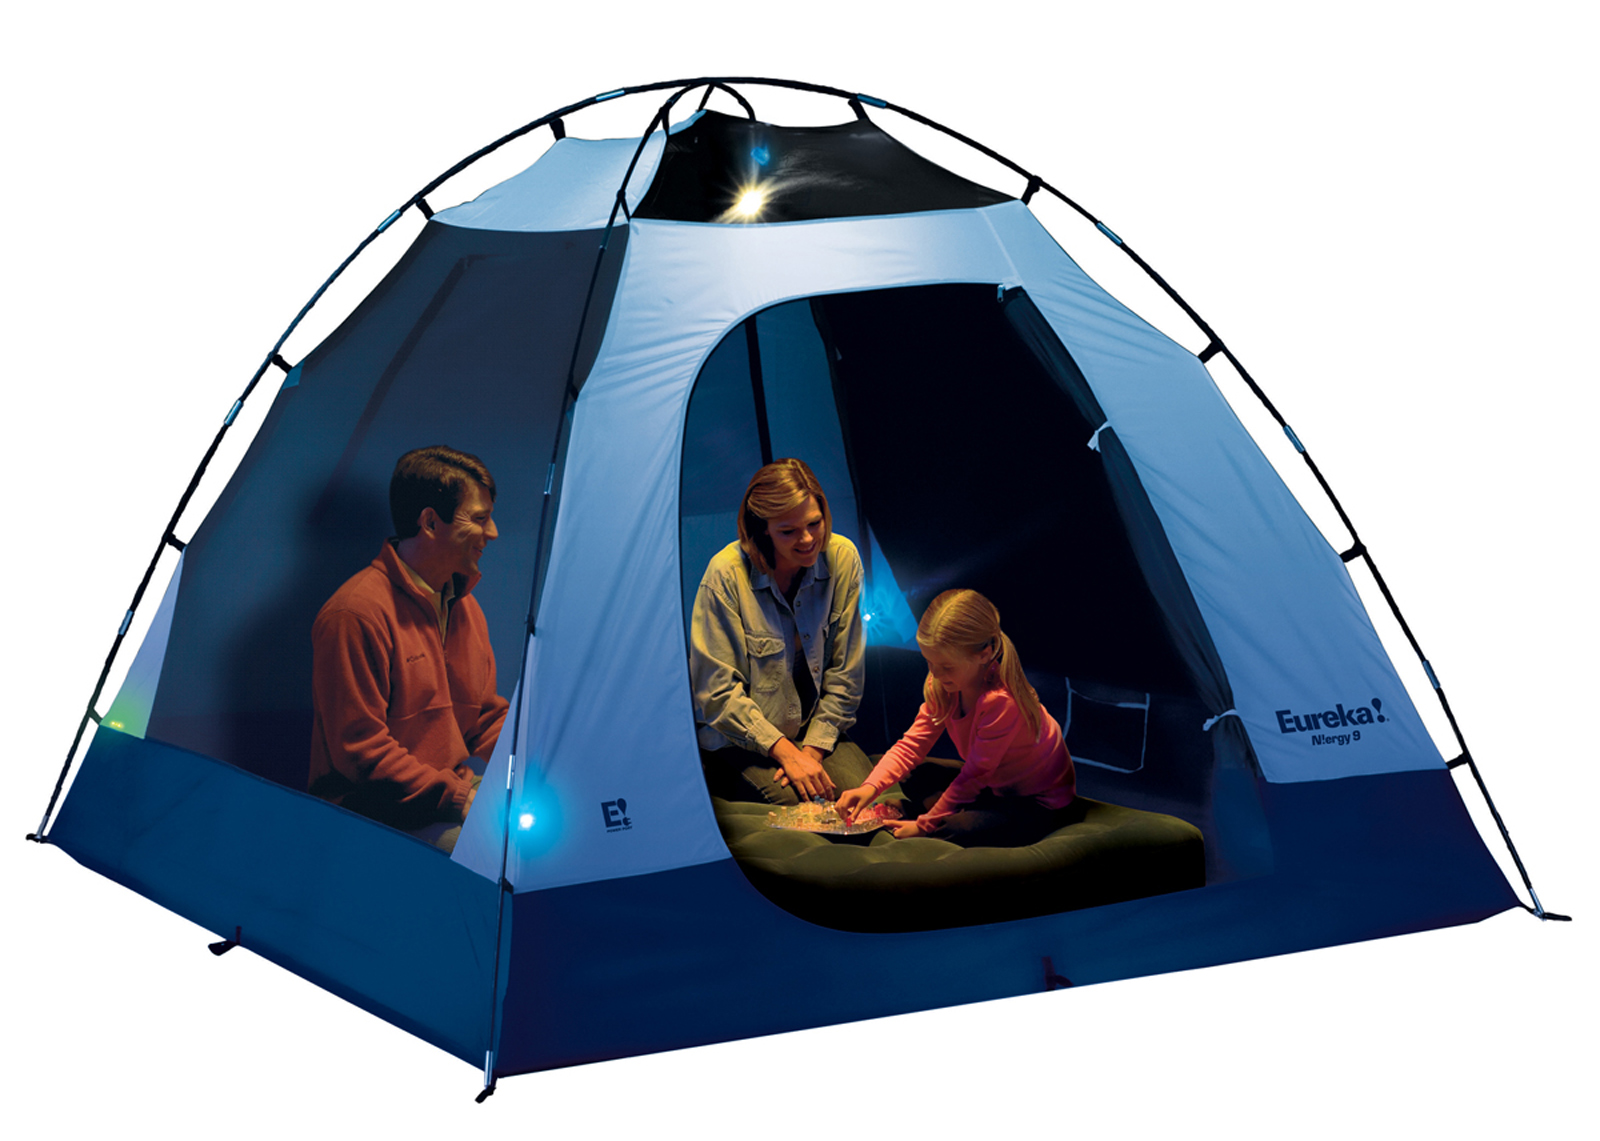 The Eureka N!ergy 9 tent is compatible with the companyu0027s E! Power Pack  sc 1 st  The Spokesman-Review & Sleep on this tent review | The Spokesman-Review